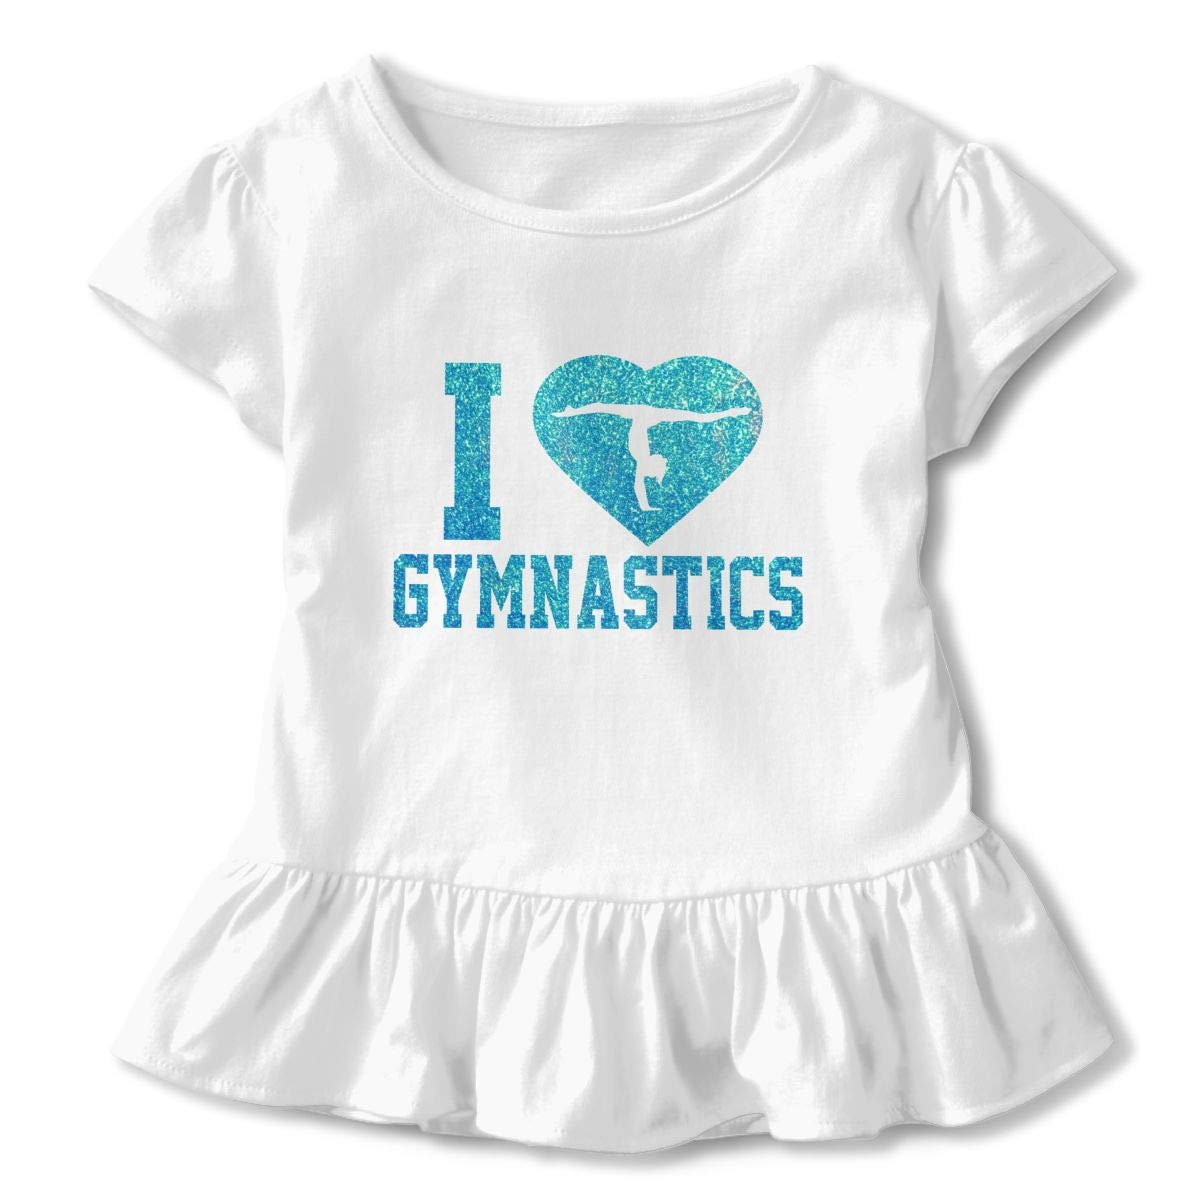 Cheng Jian Bo I Heart Glitter Gymnastics Toddler Girls T Shirt Kids Cotton Short Sleeve Ruffle Tee